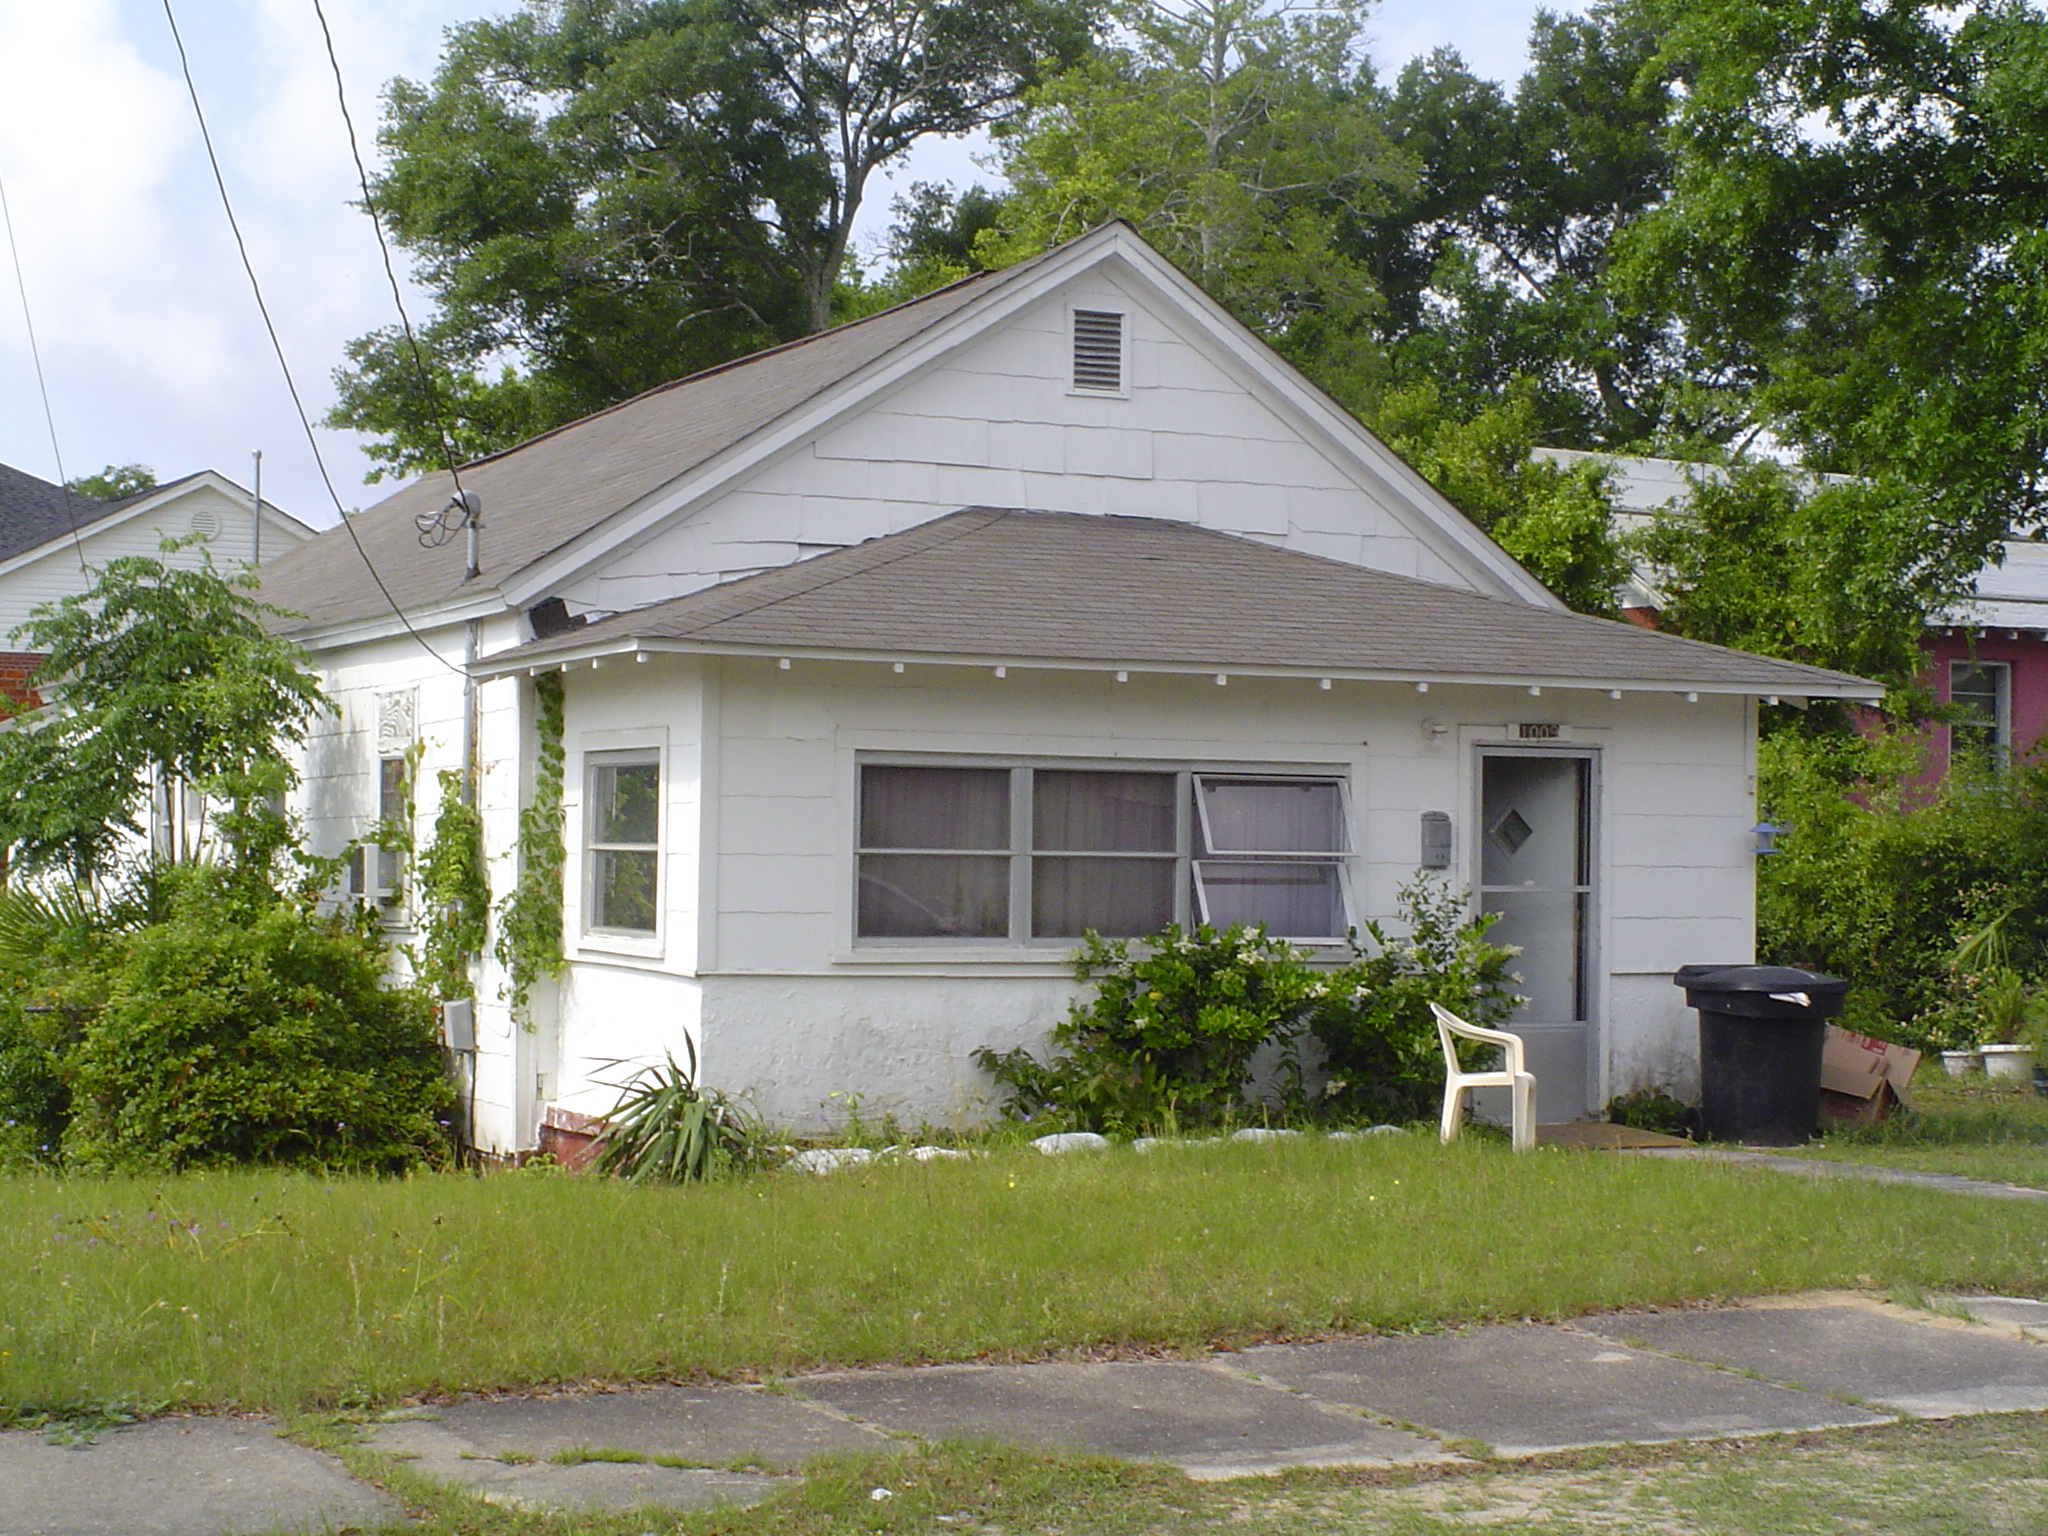 House Before Repairs